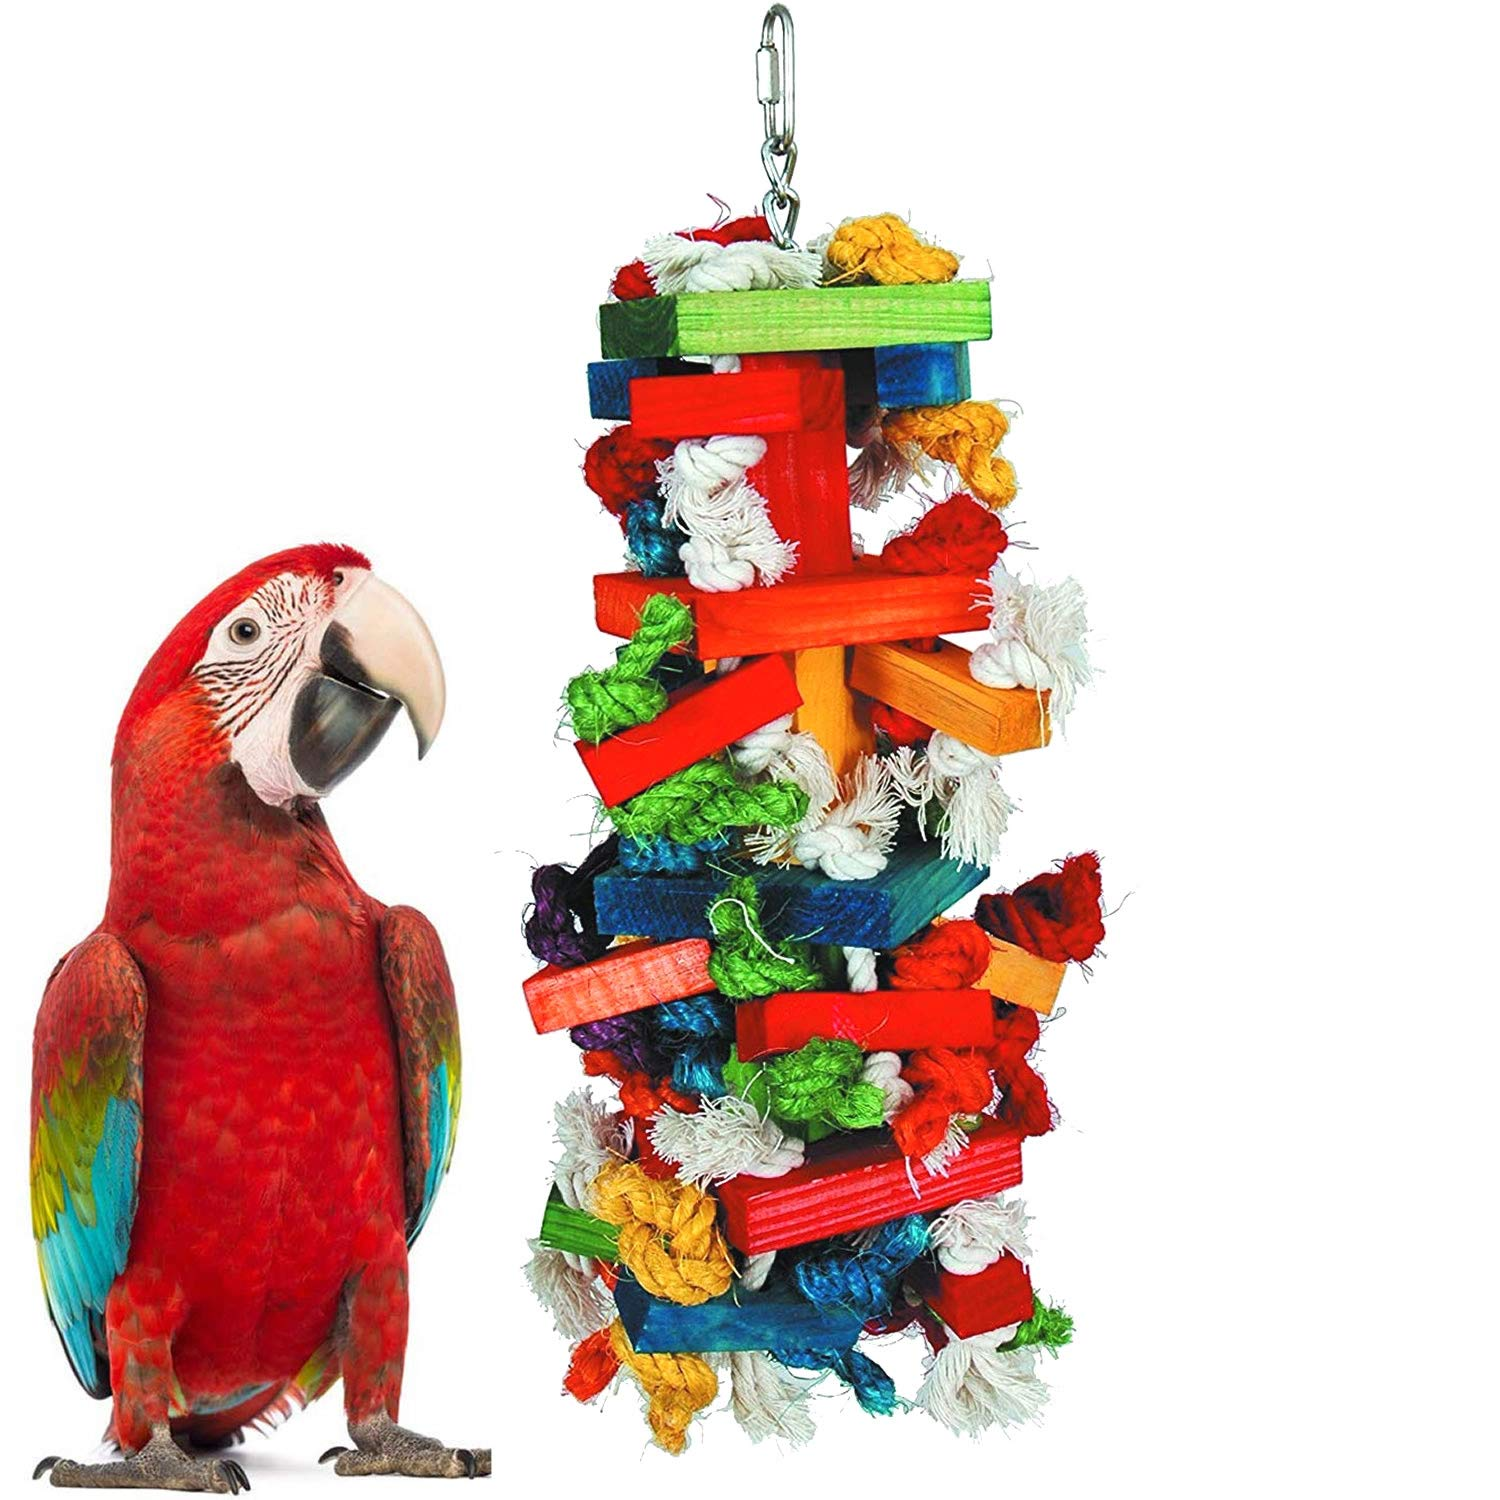 Mrli Pet Large Bird Knots Block Chewing Toys, Colorful N Entertaining, Keeps Bird Happy, Large, 16'' X 6'' X 6'' Inches by Mrli Pet